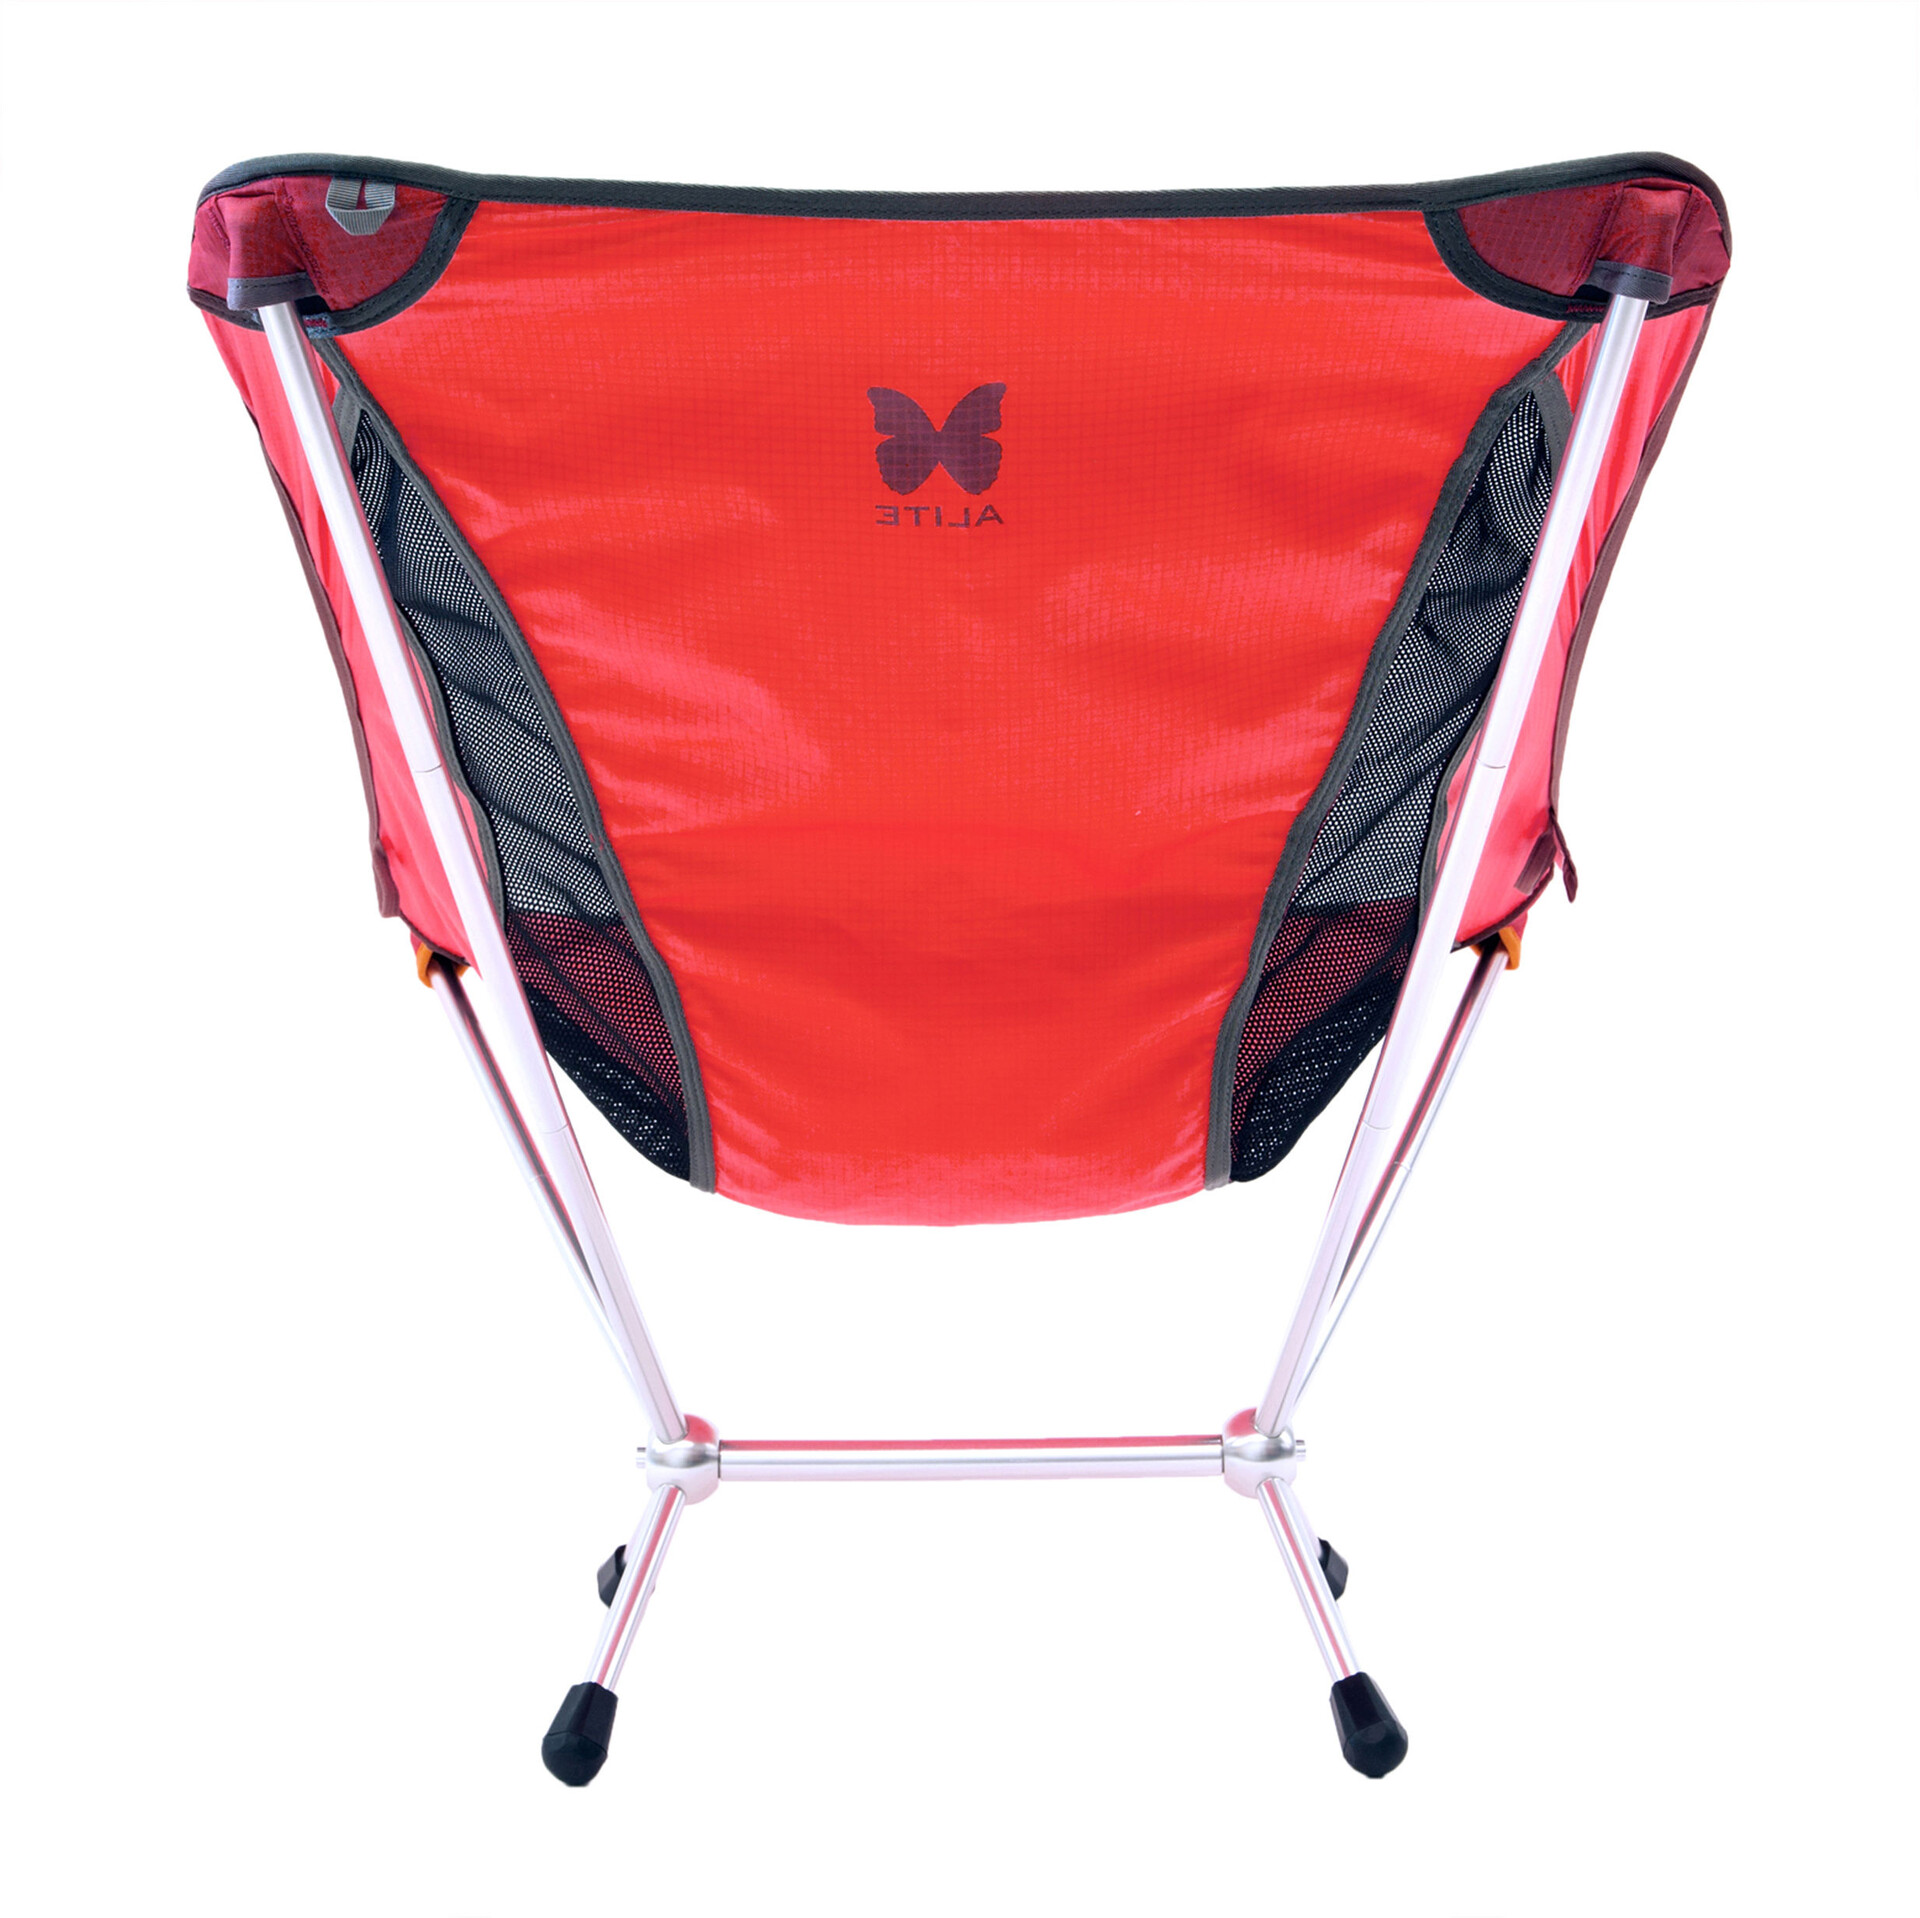 alite mantis chair rei beach chairs spreckles red addnature